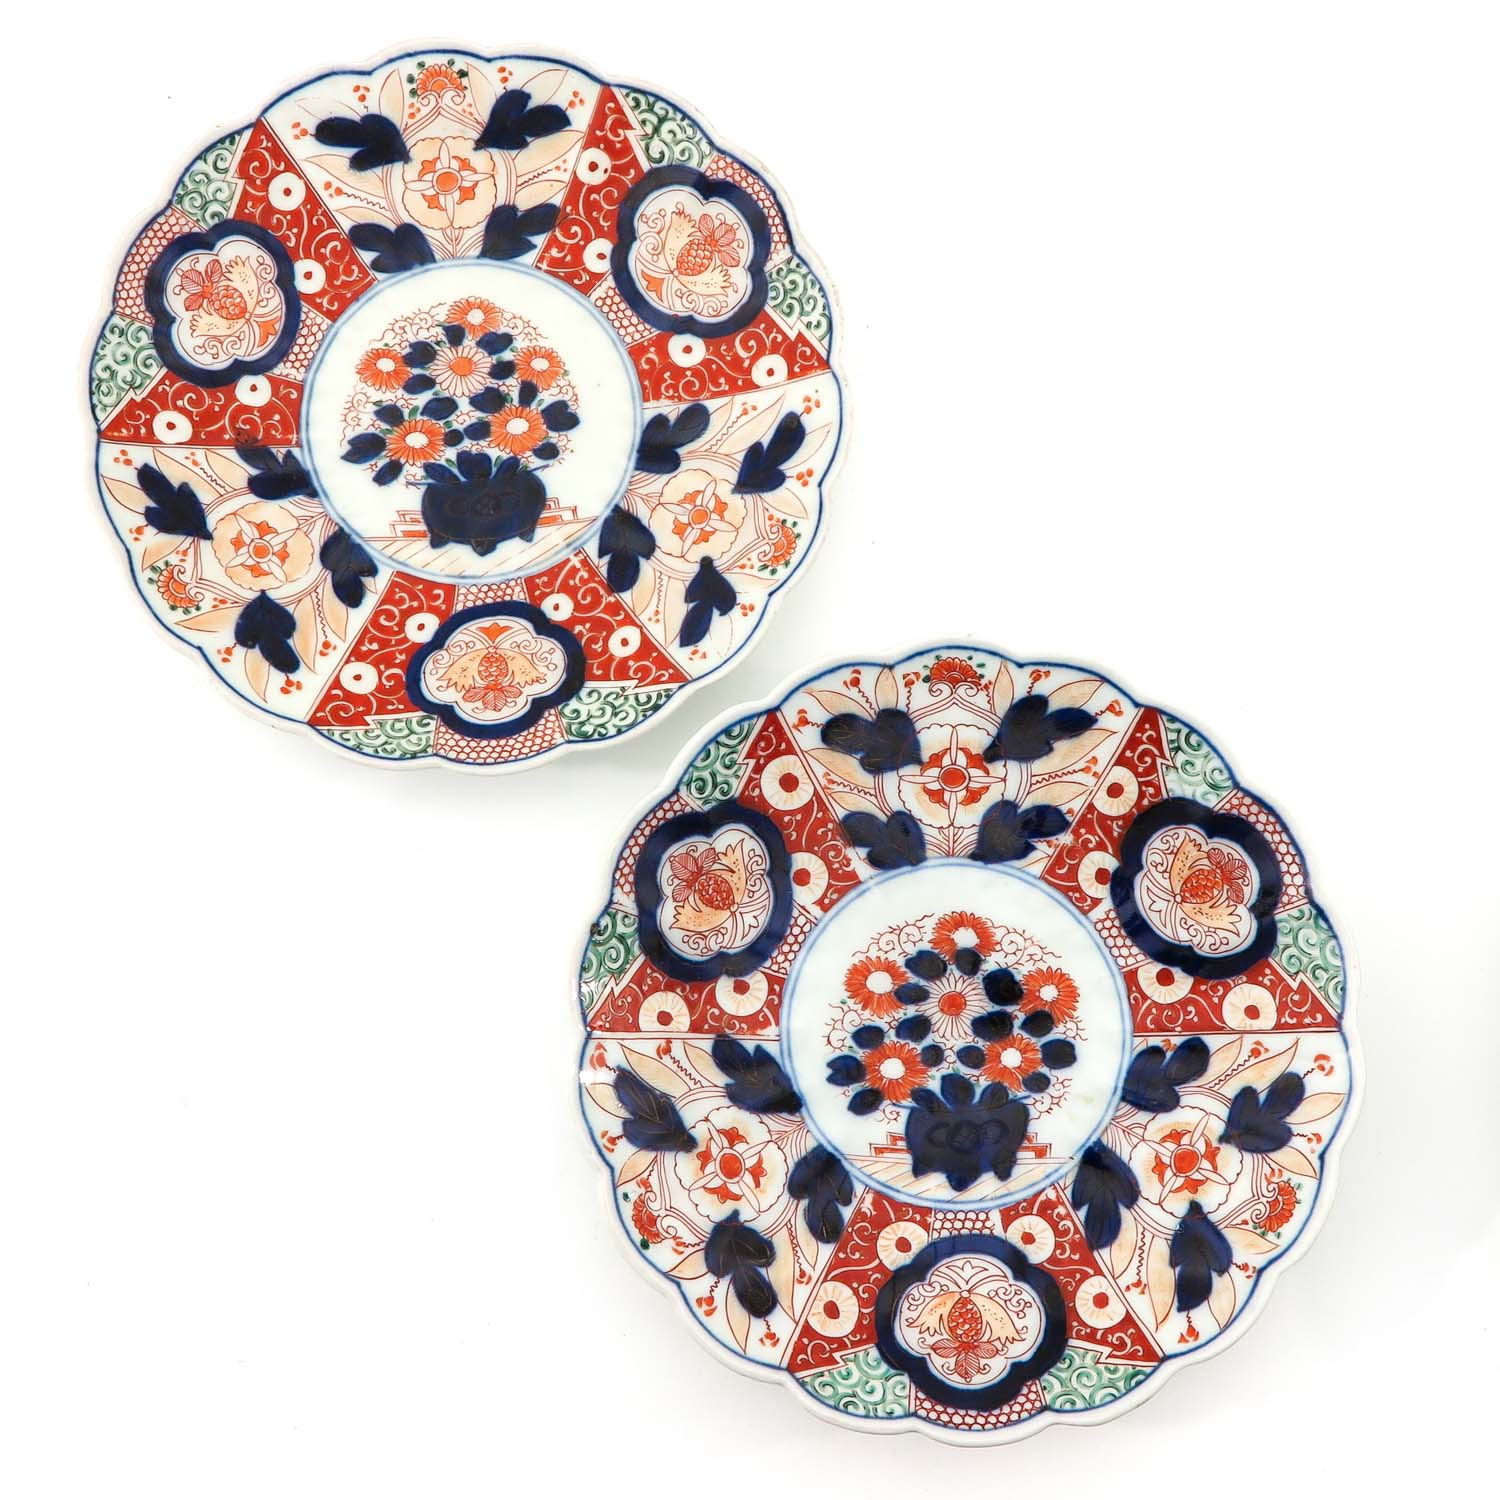 A Collection of 4 Imari Plates - Image 5 of 10